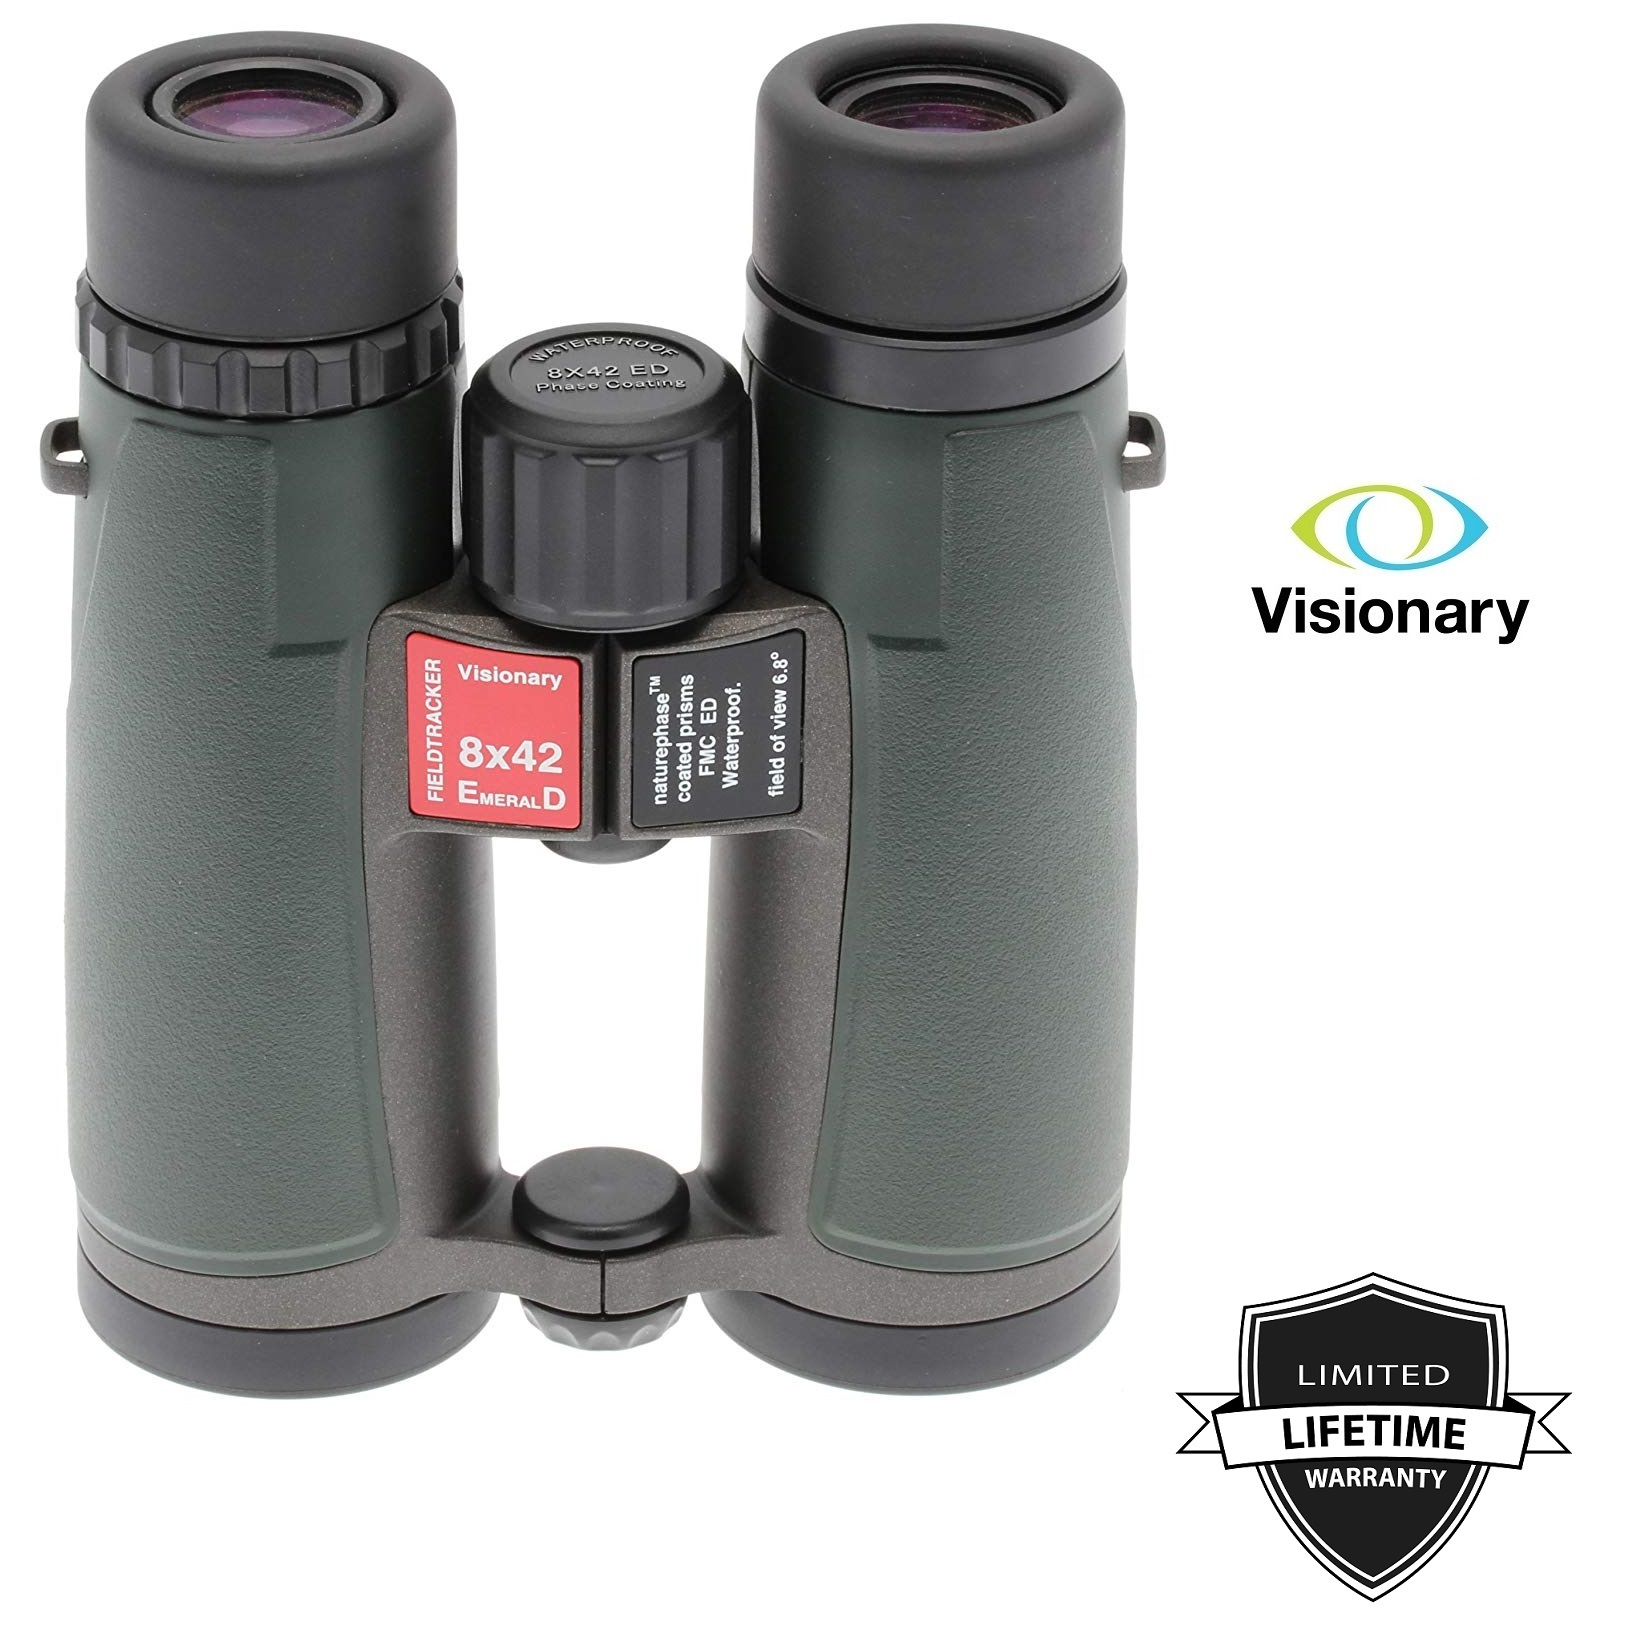 Visionary ED 8x42 Fieldtracker Emerald Binocular